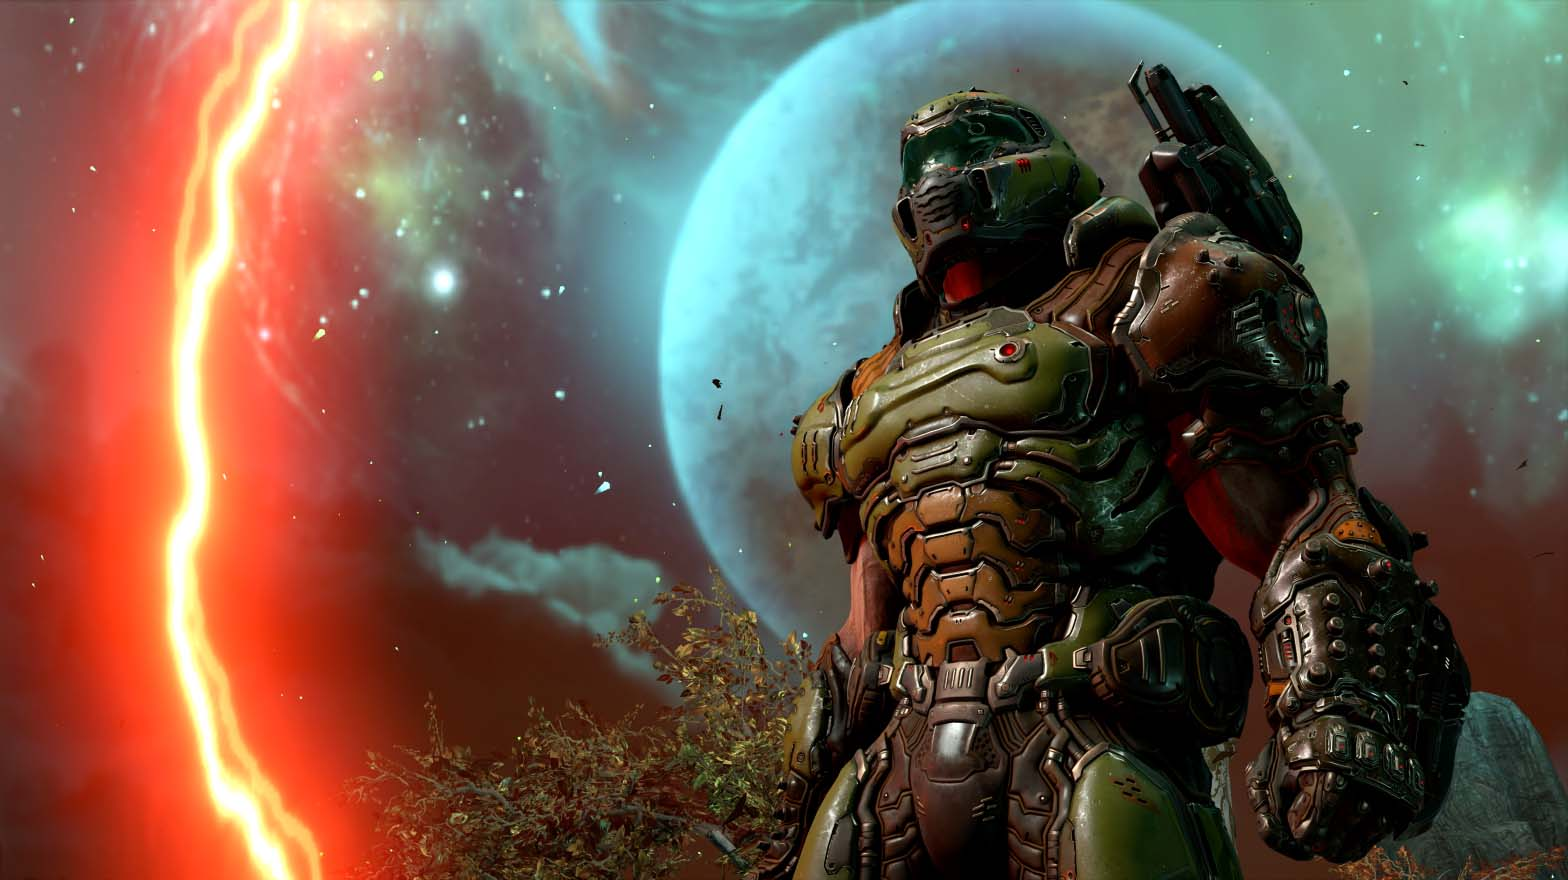 Doom character with planet in the background